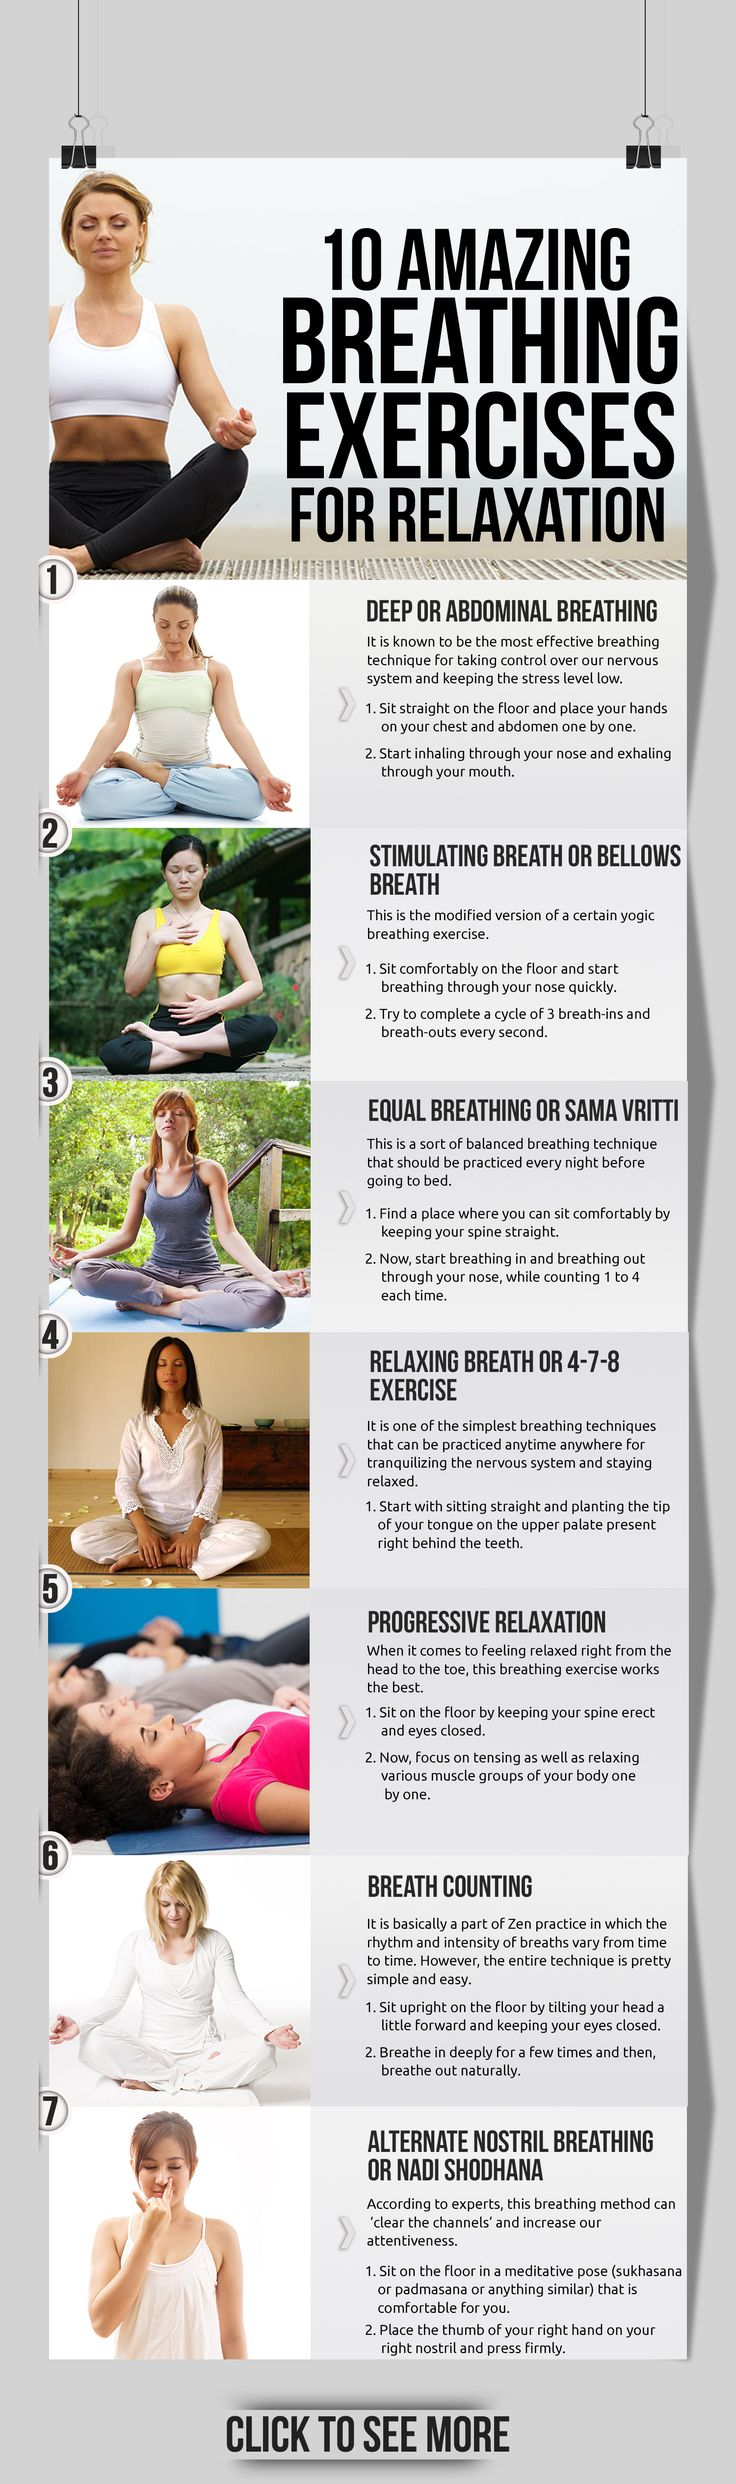 Aid to Relaxation. Breathing exercises can help in reducing stress & anxiety & restoring calm ... Check out the top 10 breathing technique for relaxation.